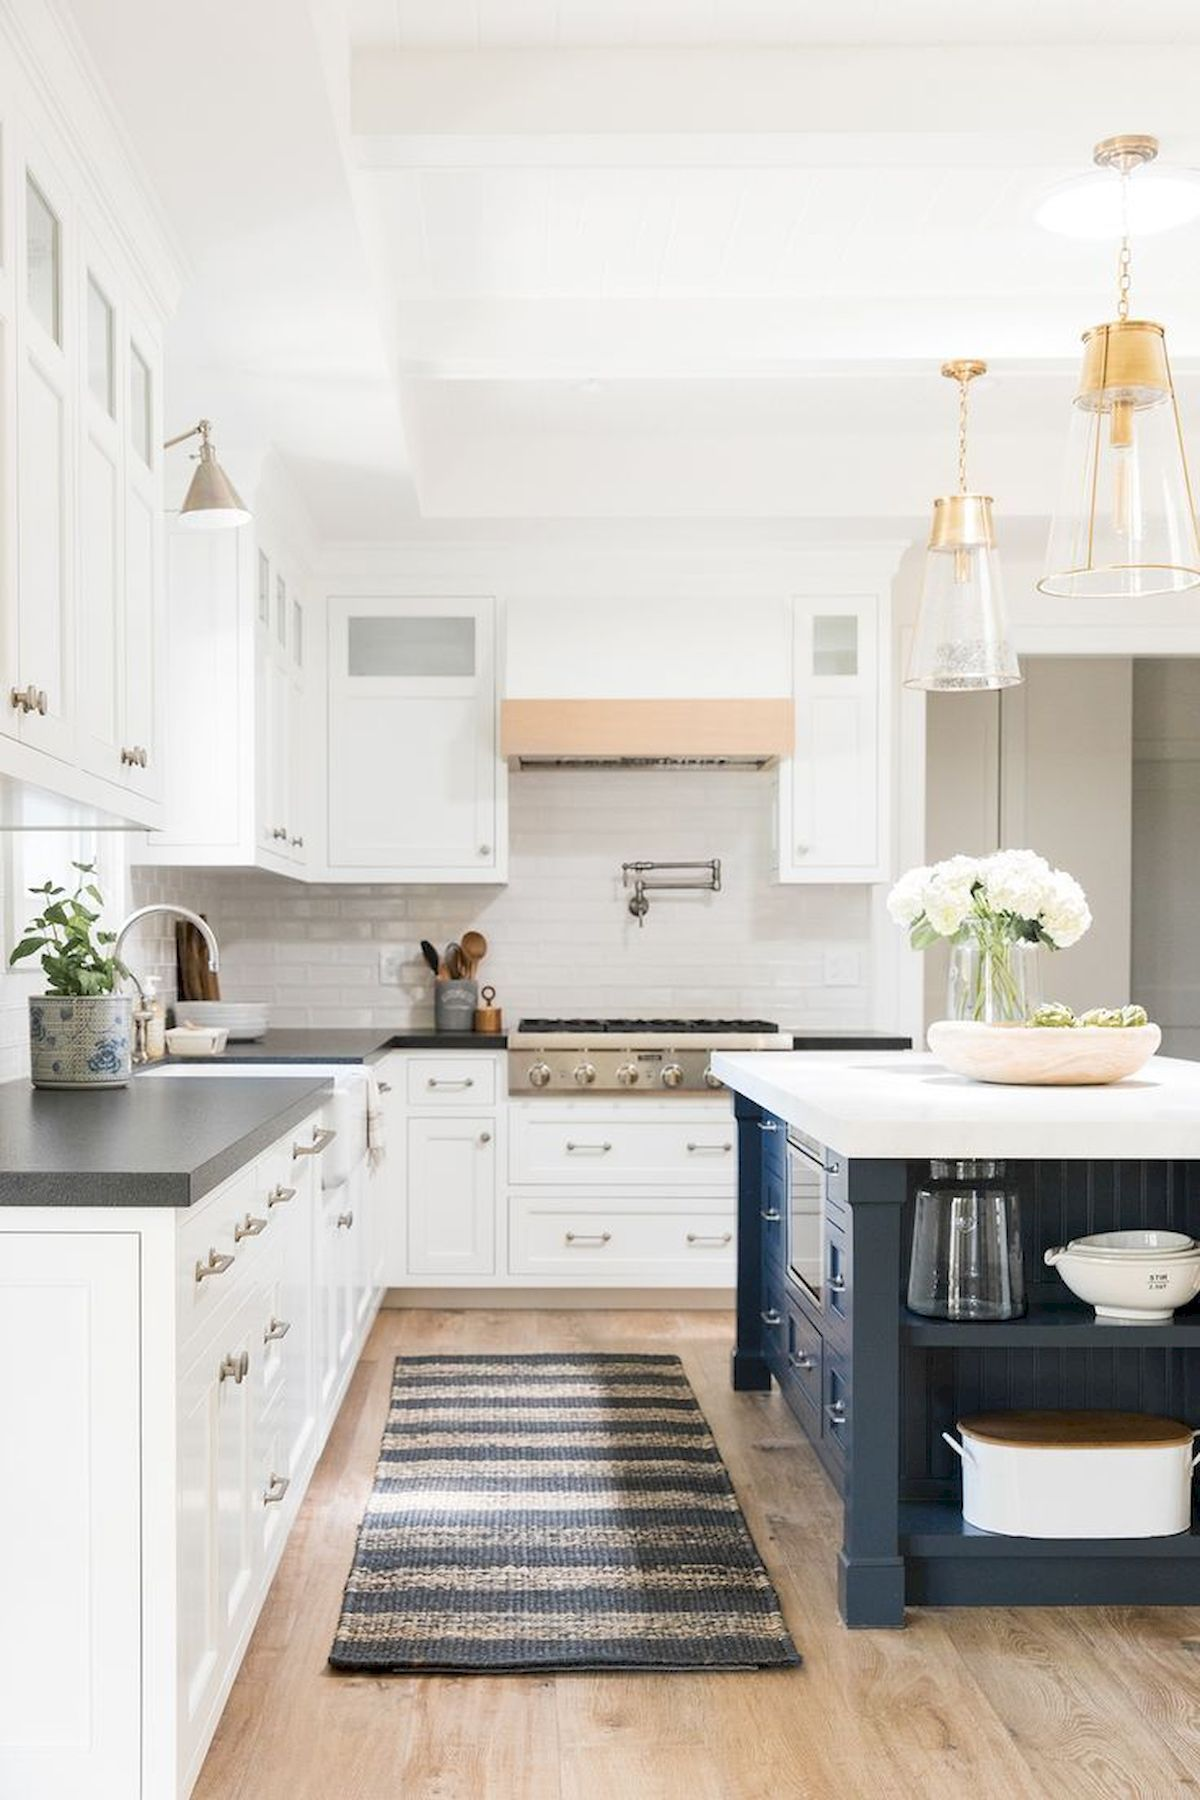 Gallery Photos Kitchen Ideas That Work For Rooms Of All Sizes Yellowraises Kitchen Remodel Small Kitchen Renovation New Kitchen Cabinets